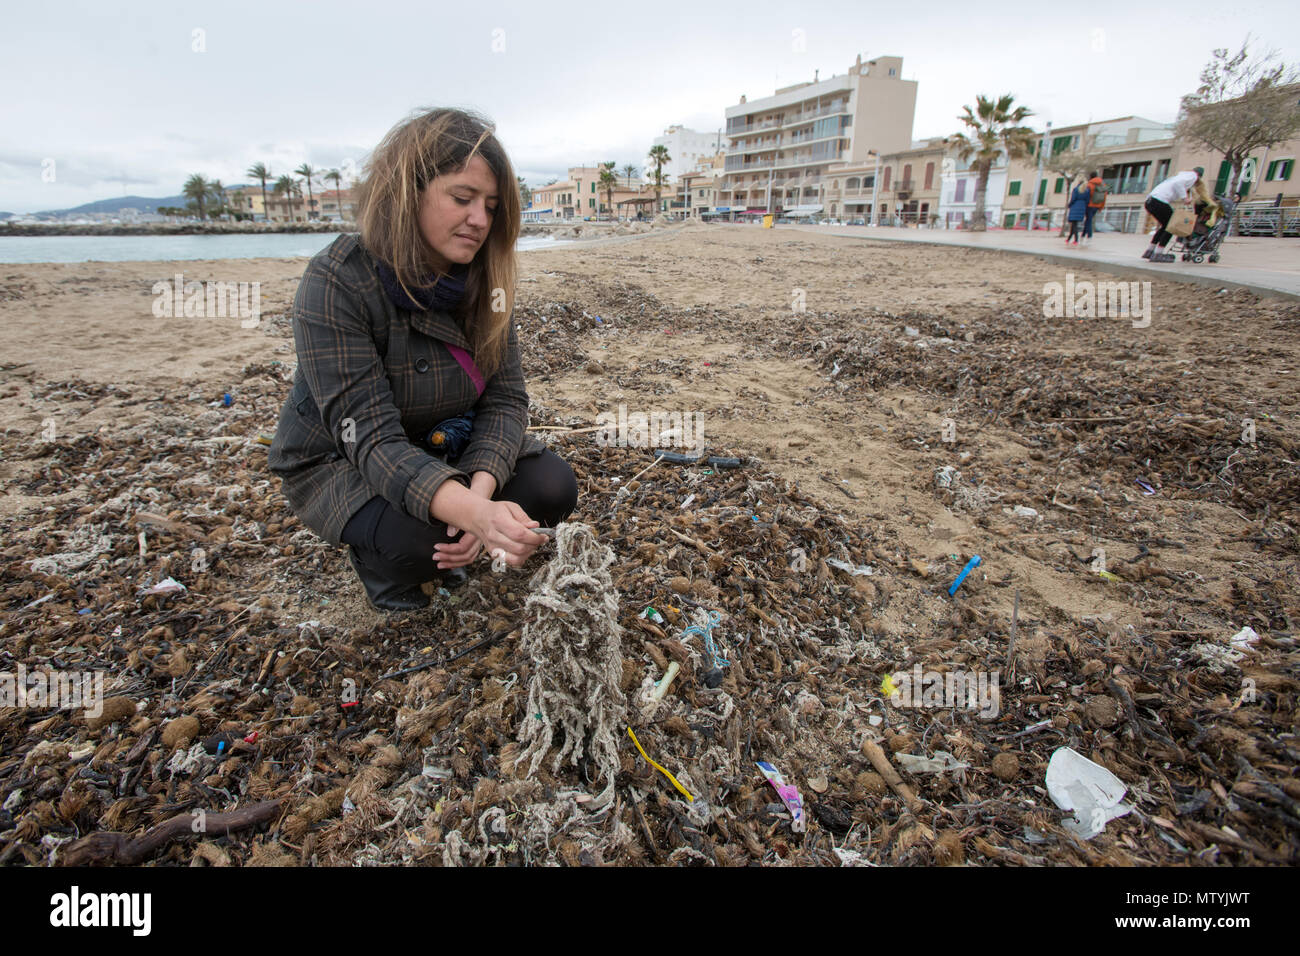 20 March 2018, Spain, Mallorca: Aina Barcelò from the environment organisation 'Ondine Baleares' examining rubbish on the beach in the Palma bay which has got mixed up with Neptune grass and sanitary products. Sewage works in Palma quickly become overburdened when it rains and raw sewage ends up flowing directly into the sea. The rubbish then lands on the beaches and mixes with the Neptune grass in the sand. Photo: Bodo Marks/dpa Stock Photo